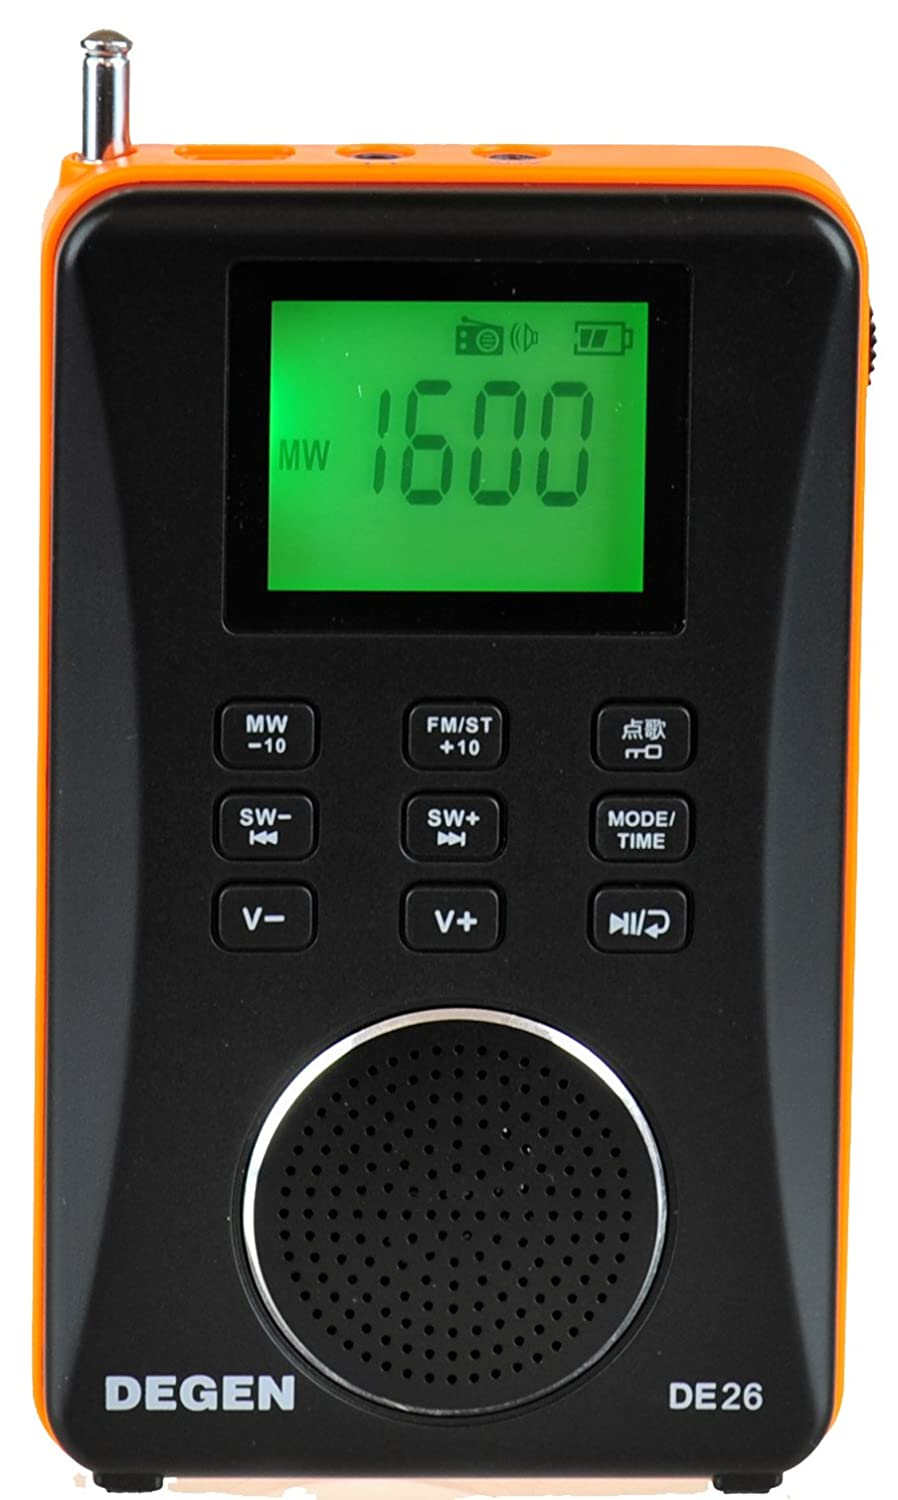 Degen DE26 3-in-1 Rechargeable AM/FM Shortwave Radio, Portable Speaker & MP3 Player with Built-in Micro SD/TF Card Reader rechargeable portable 1 3 lcd tf usb mp3 music speaker with fm radio black 3 5mm jack